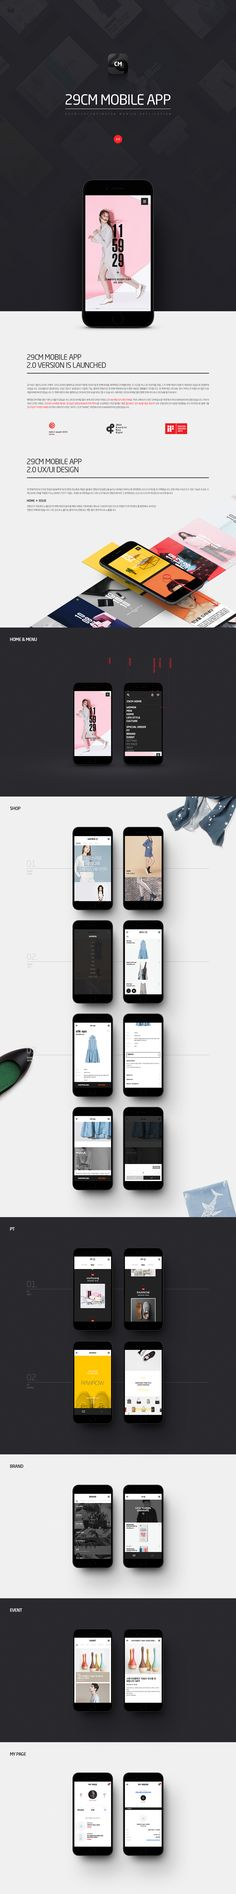 Select Shop '29CM' iOS/Android App 2.0 Ver on App Design Served